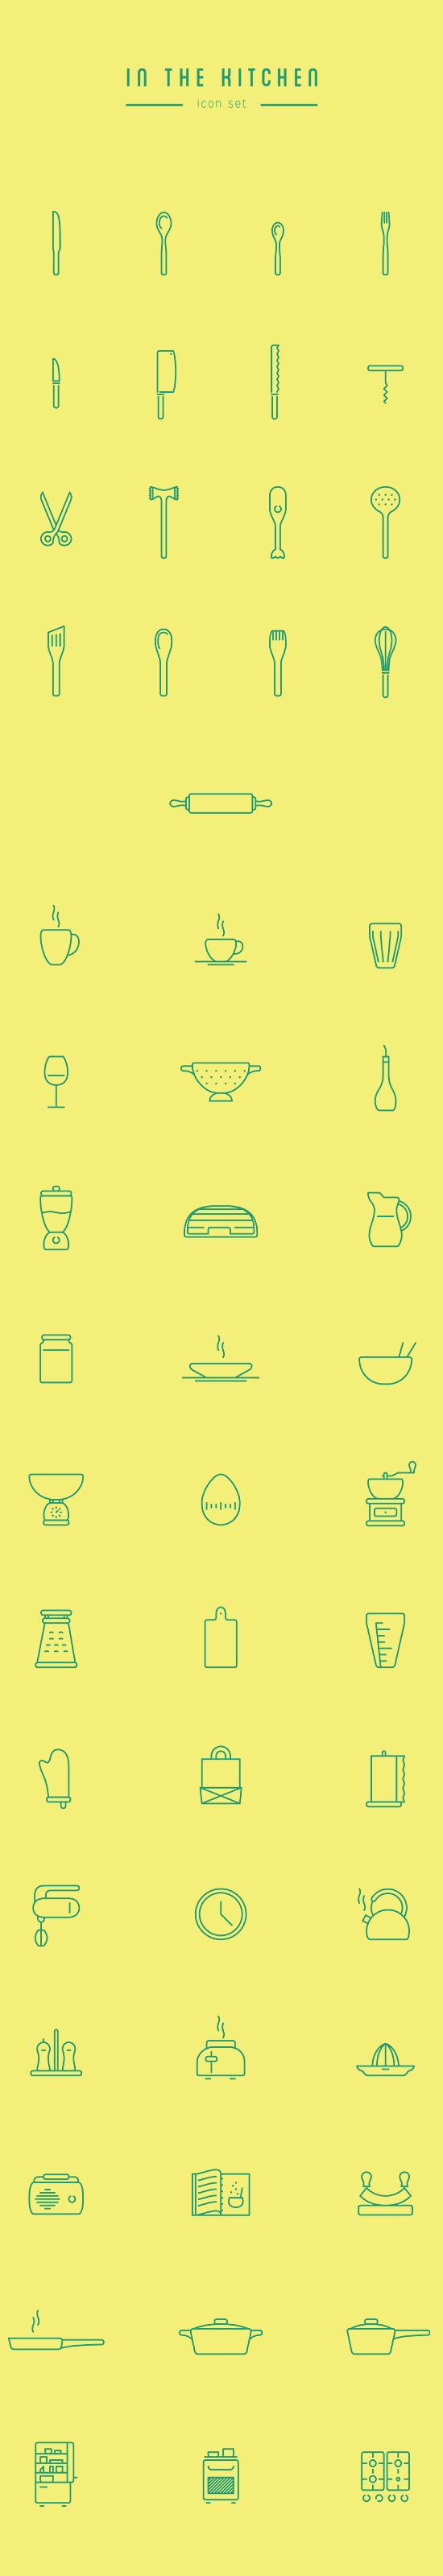 In The Kitchen – Free Icon Set on Behance